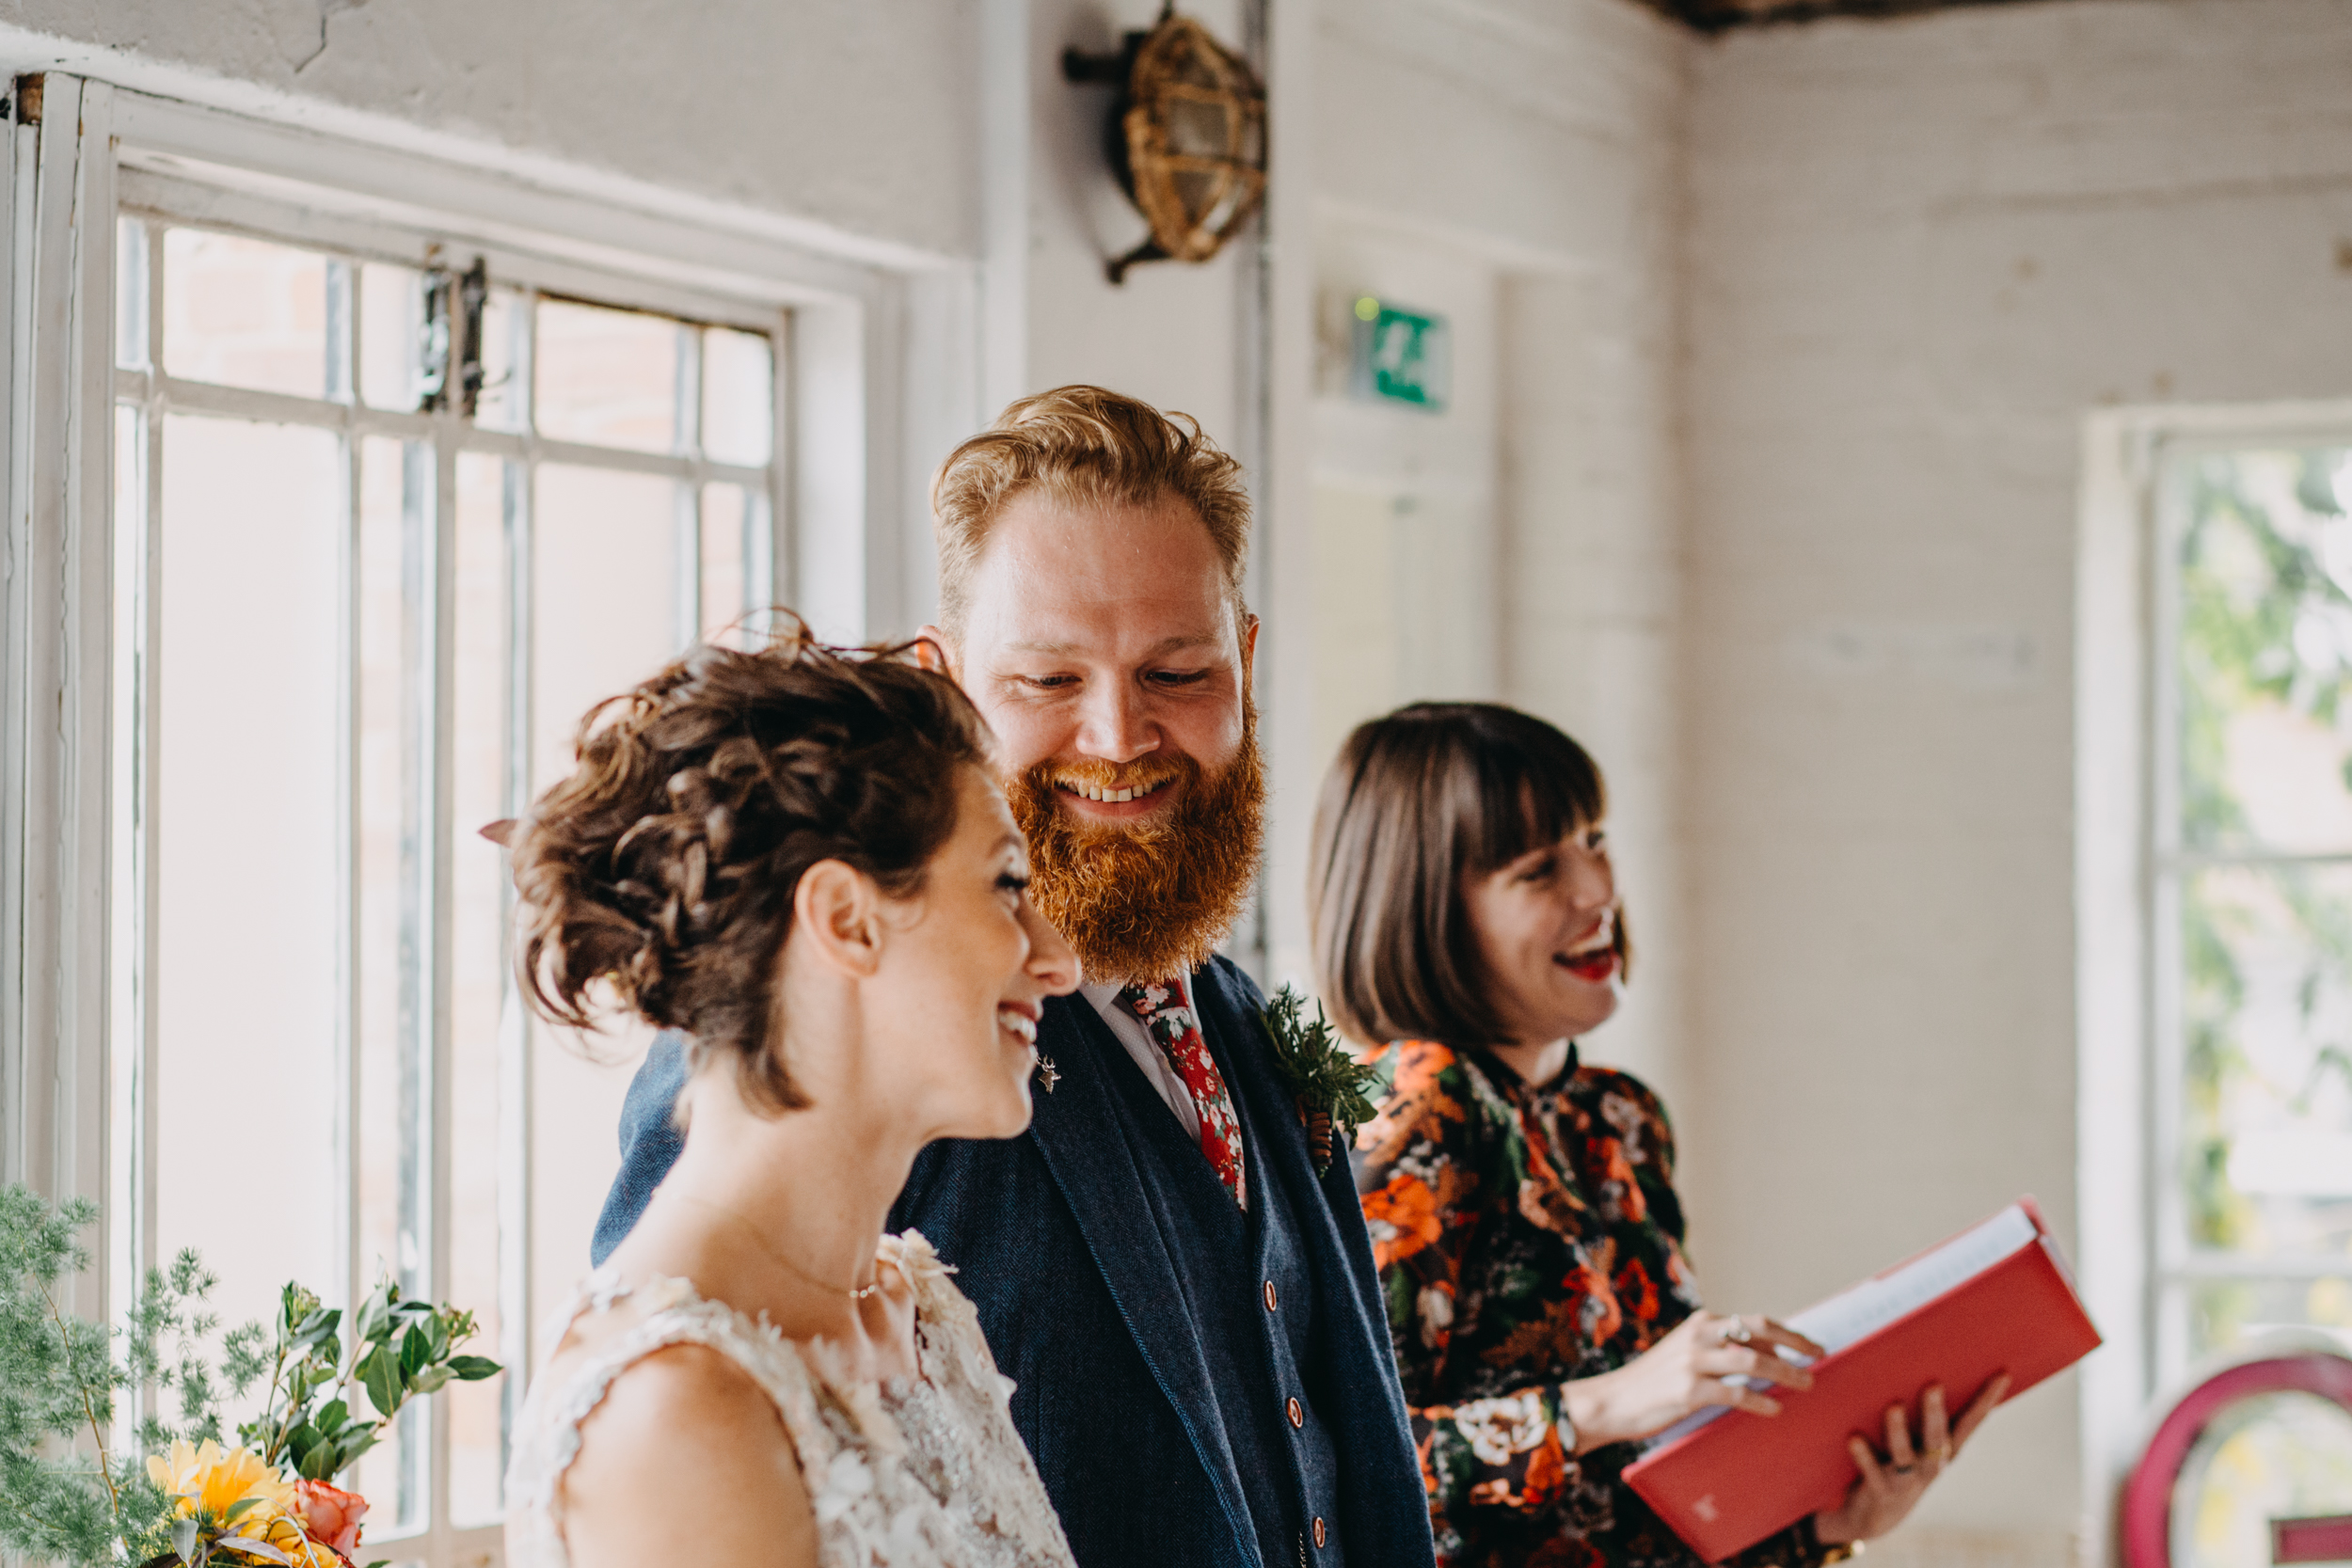 Liane and Michael's 'Jewmanist' ceremony at One Friendly Place, in Deptford. Image by  Lex Fleming.